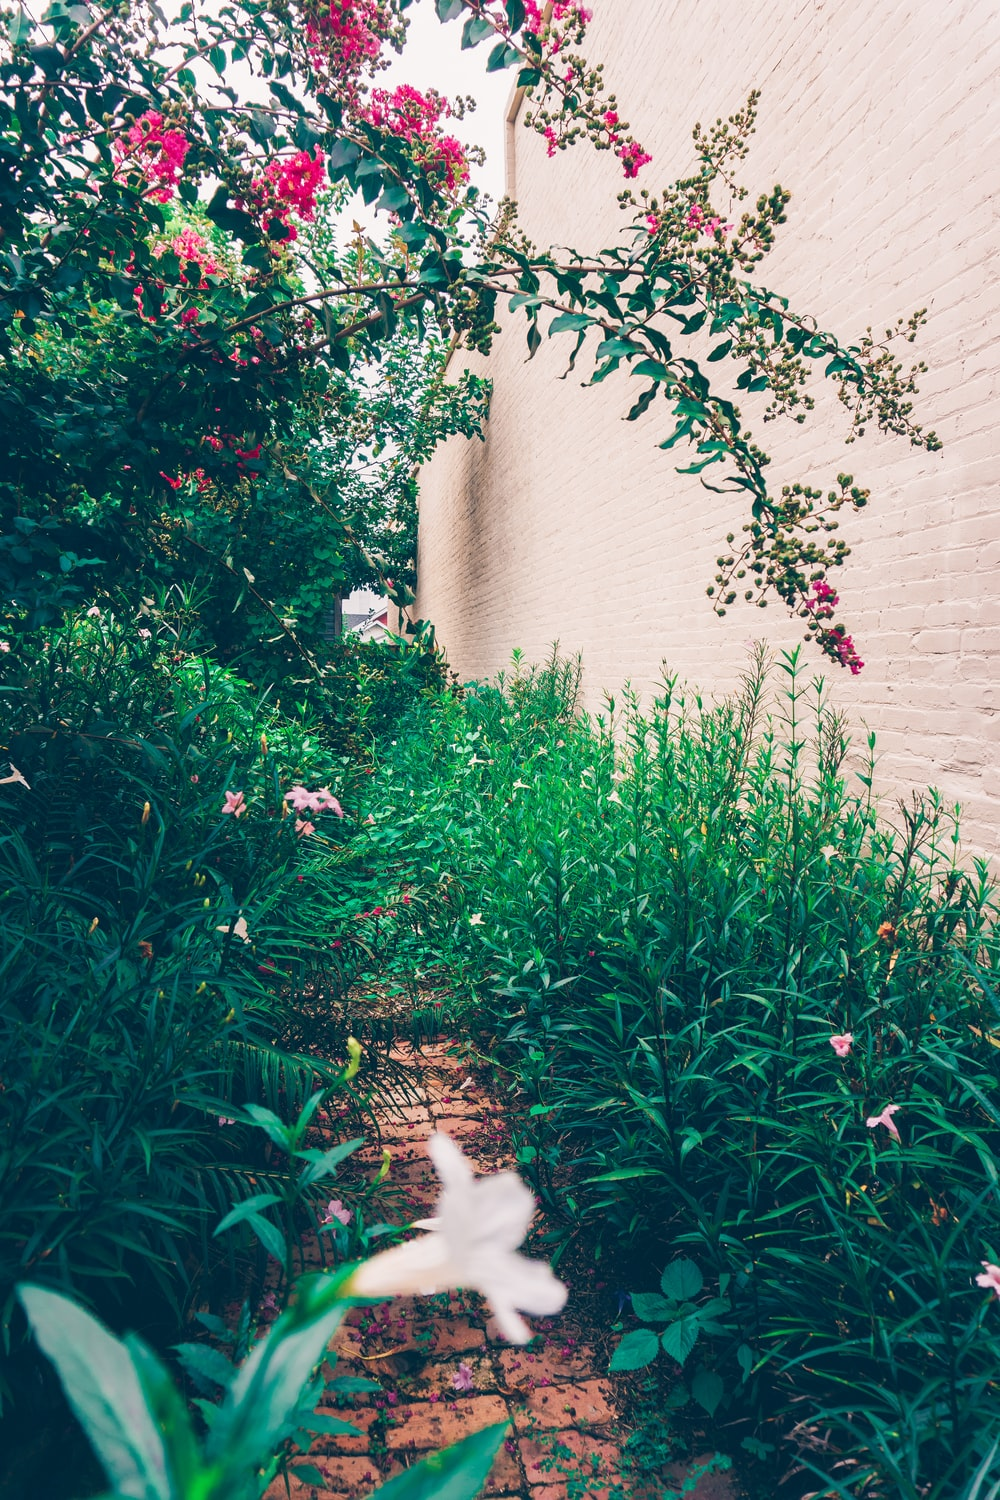 narrow pathway surrounded by plants and flowers